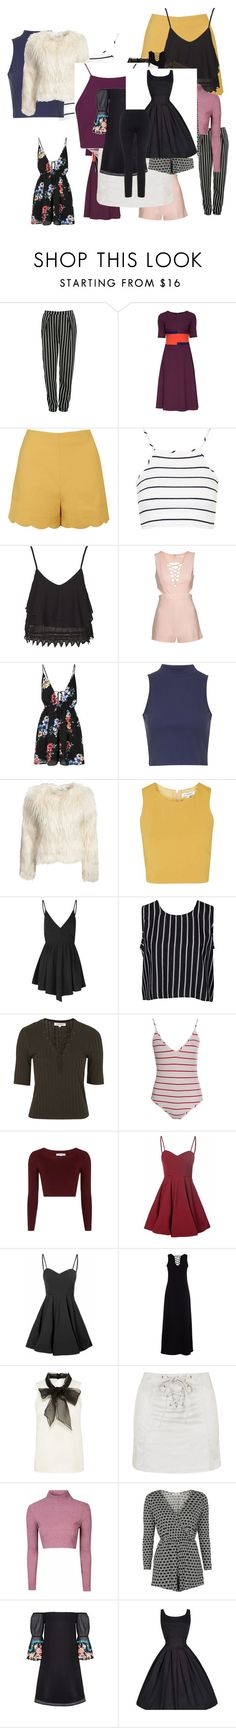 """Untitled #3749"" by luciana-boneca on Polyvore featuring Glamorous, Lattori, Topshop and Lipsy"